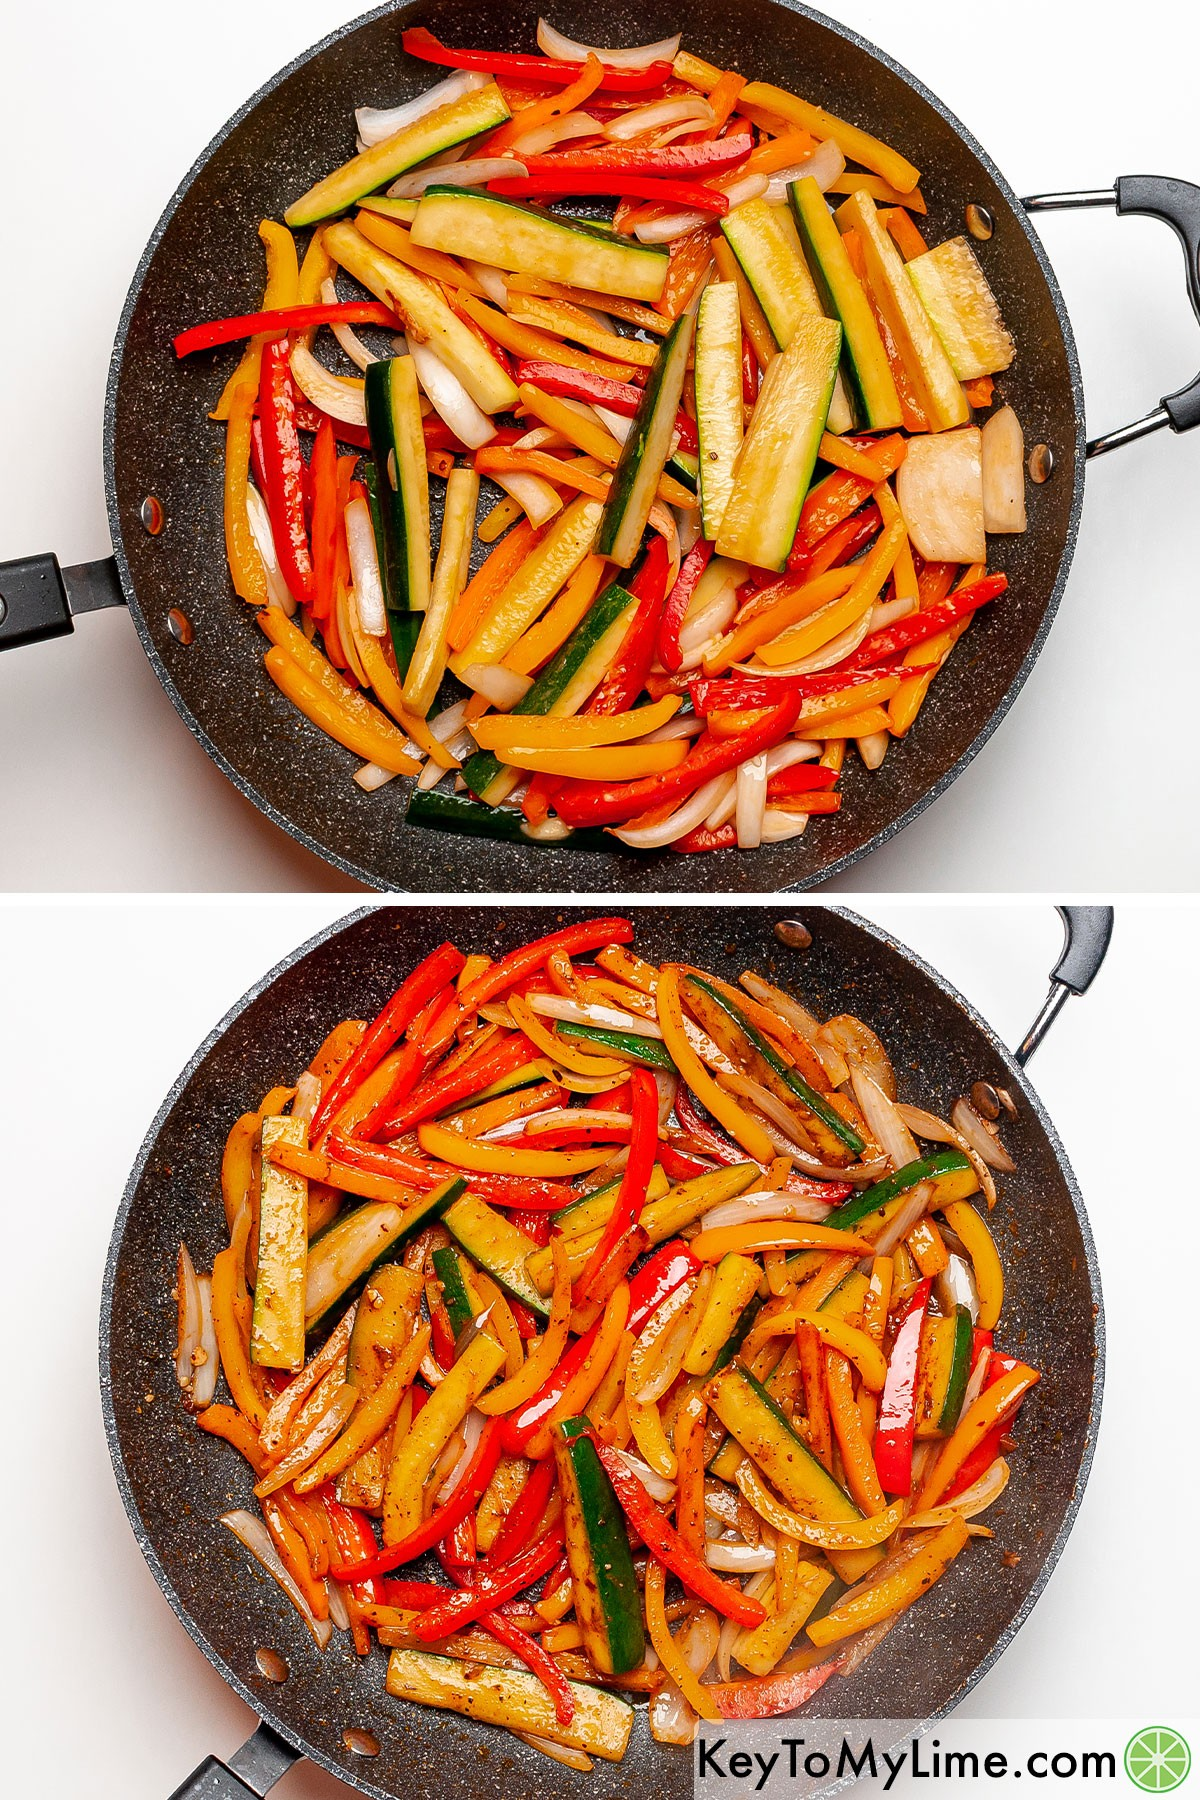 Strips of bell peppers, zucchini, and onions before and after sauteing.